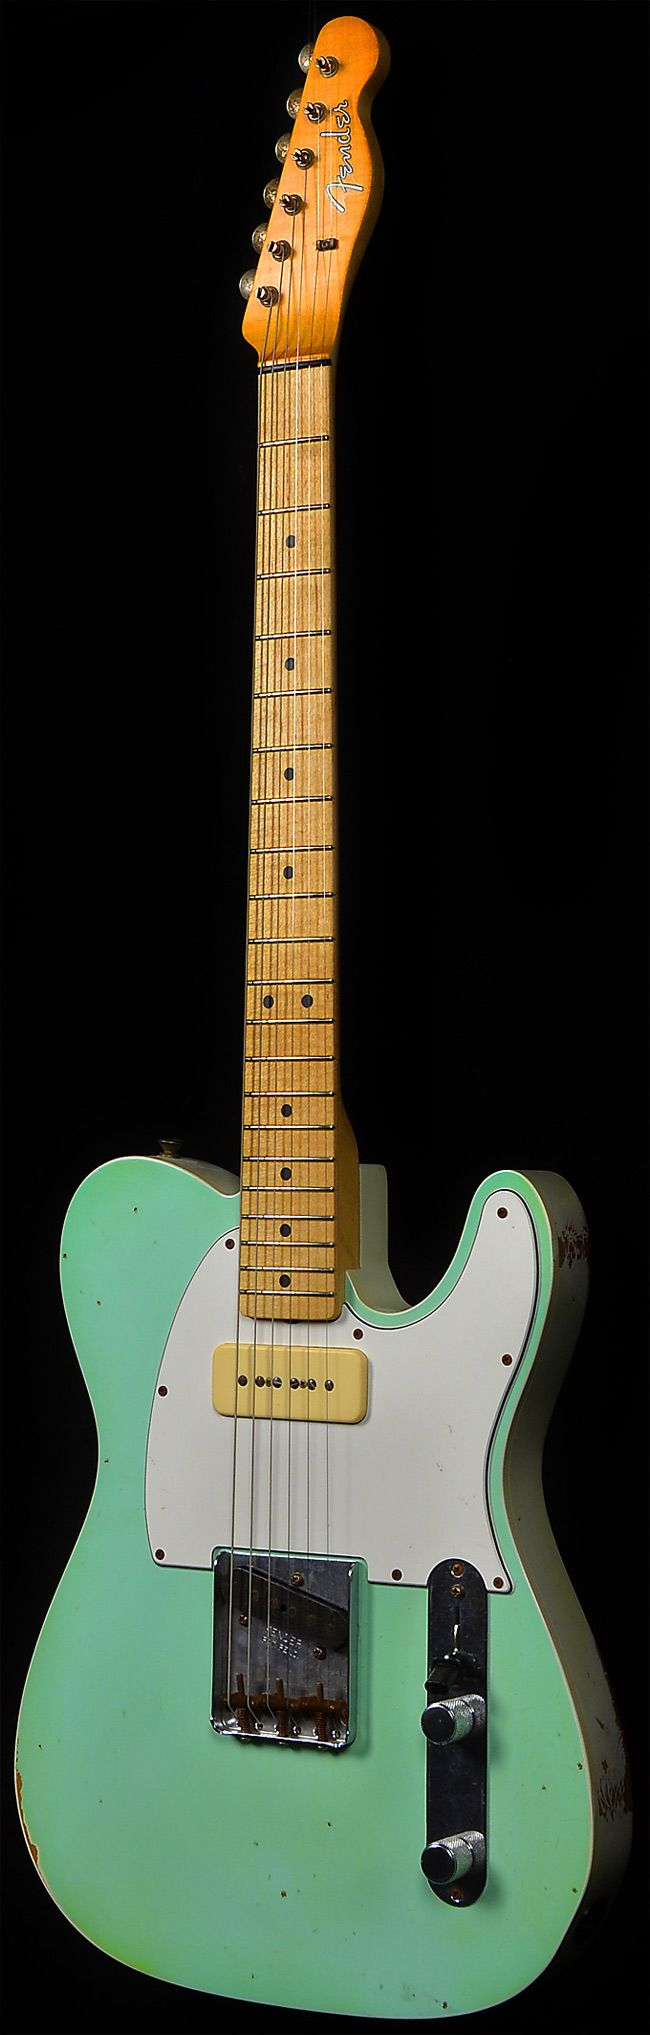 Wild West Guitars : Fender Custom Shop 1963 P90 Telecaster - Faded Surf Green Oly White Back